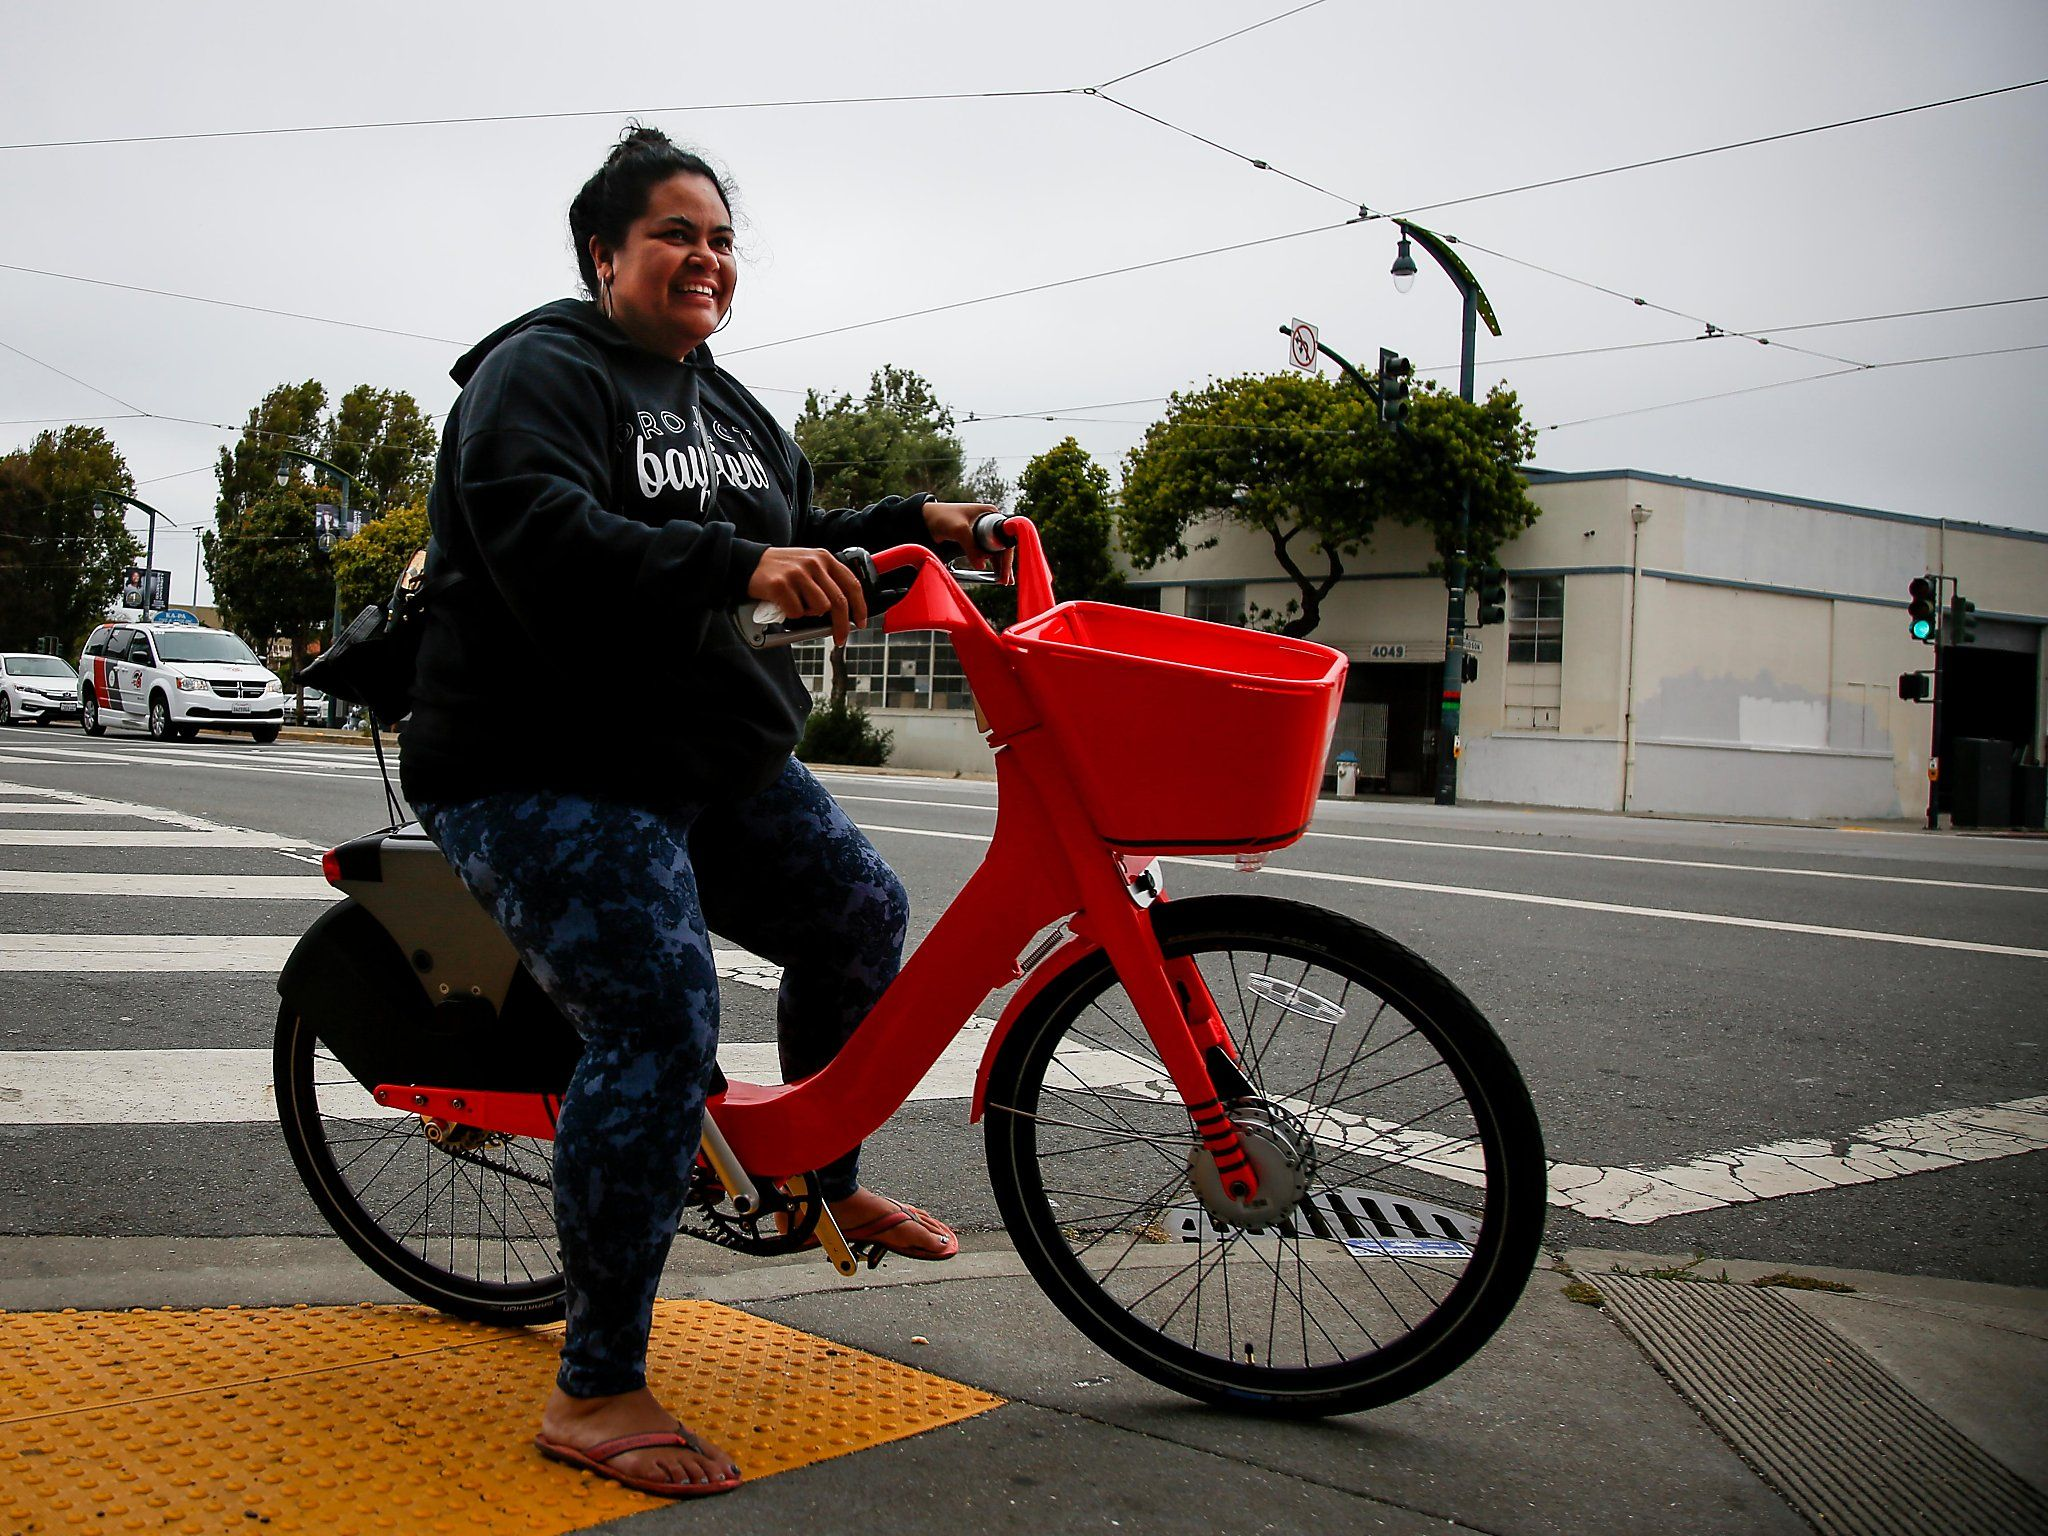 Electric Bike Share Rides Into Sf Jumping Ahead Of Ford Gobike Electric Bike Bike Share Ebike Electric Bicycle